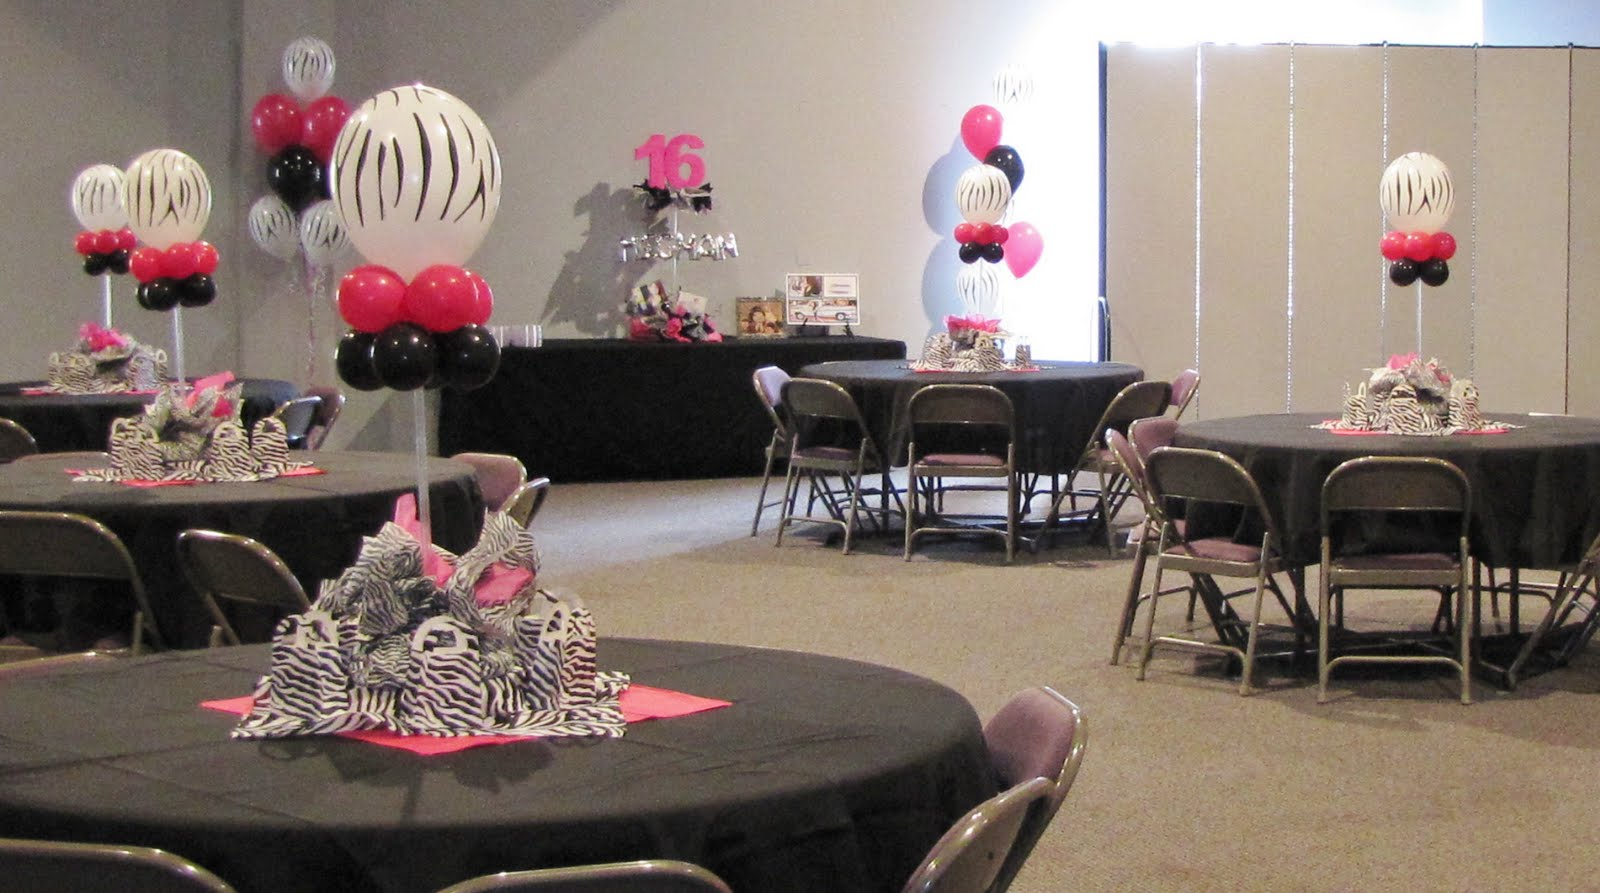 Party Table Decorations Centerpieces